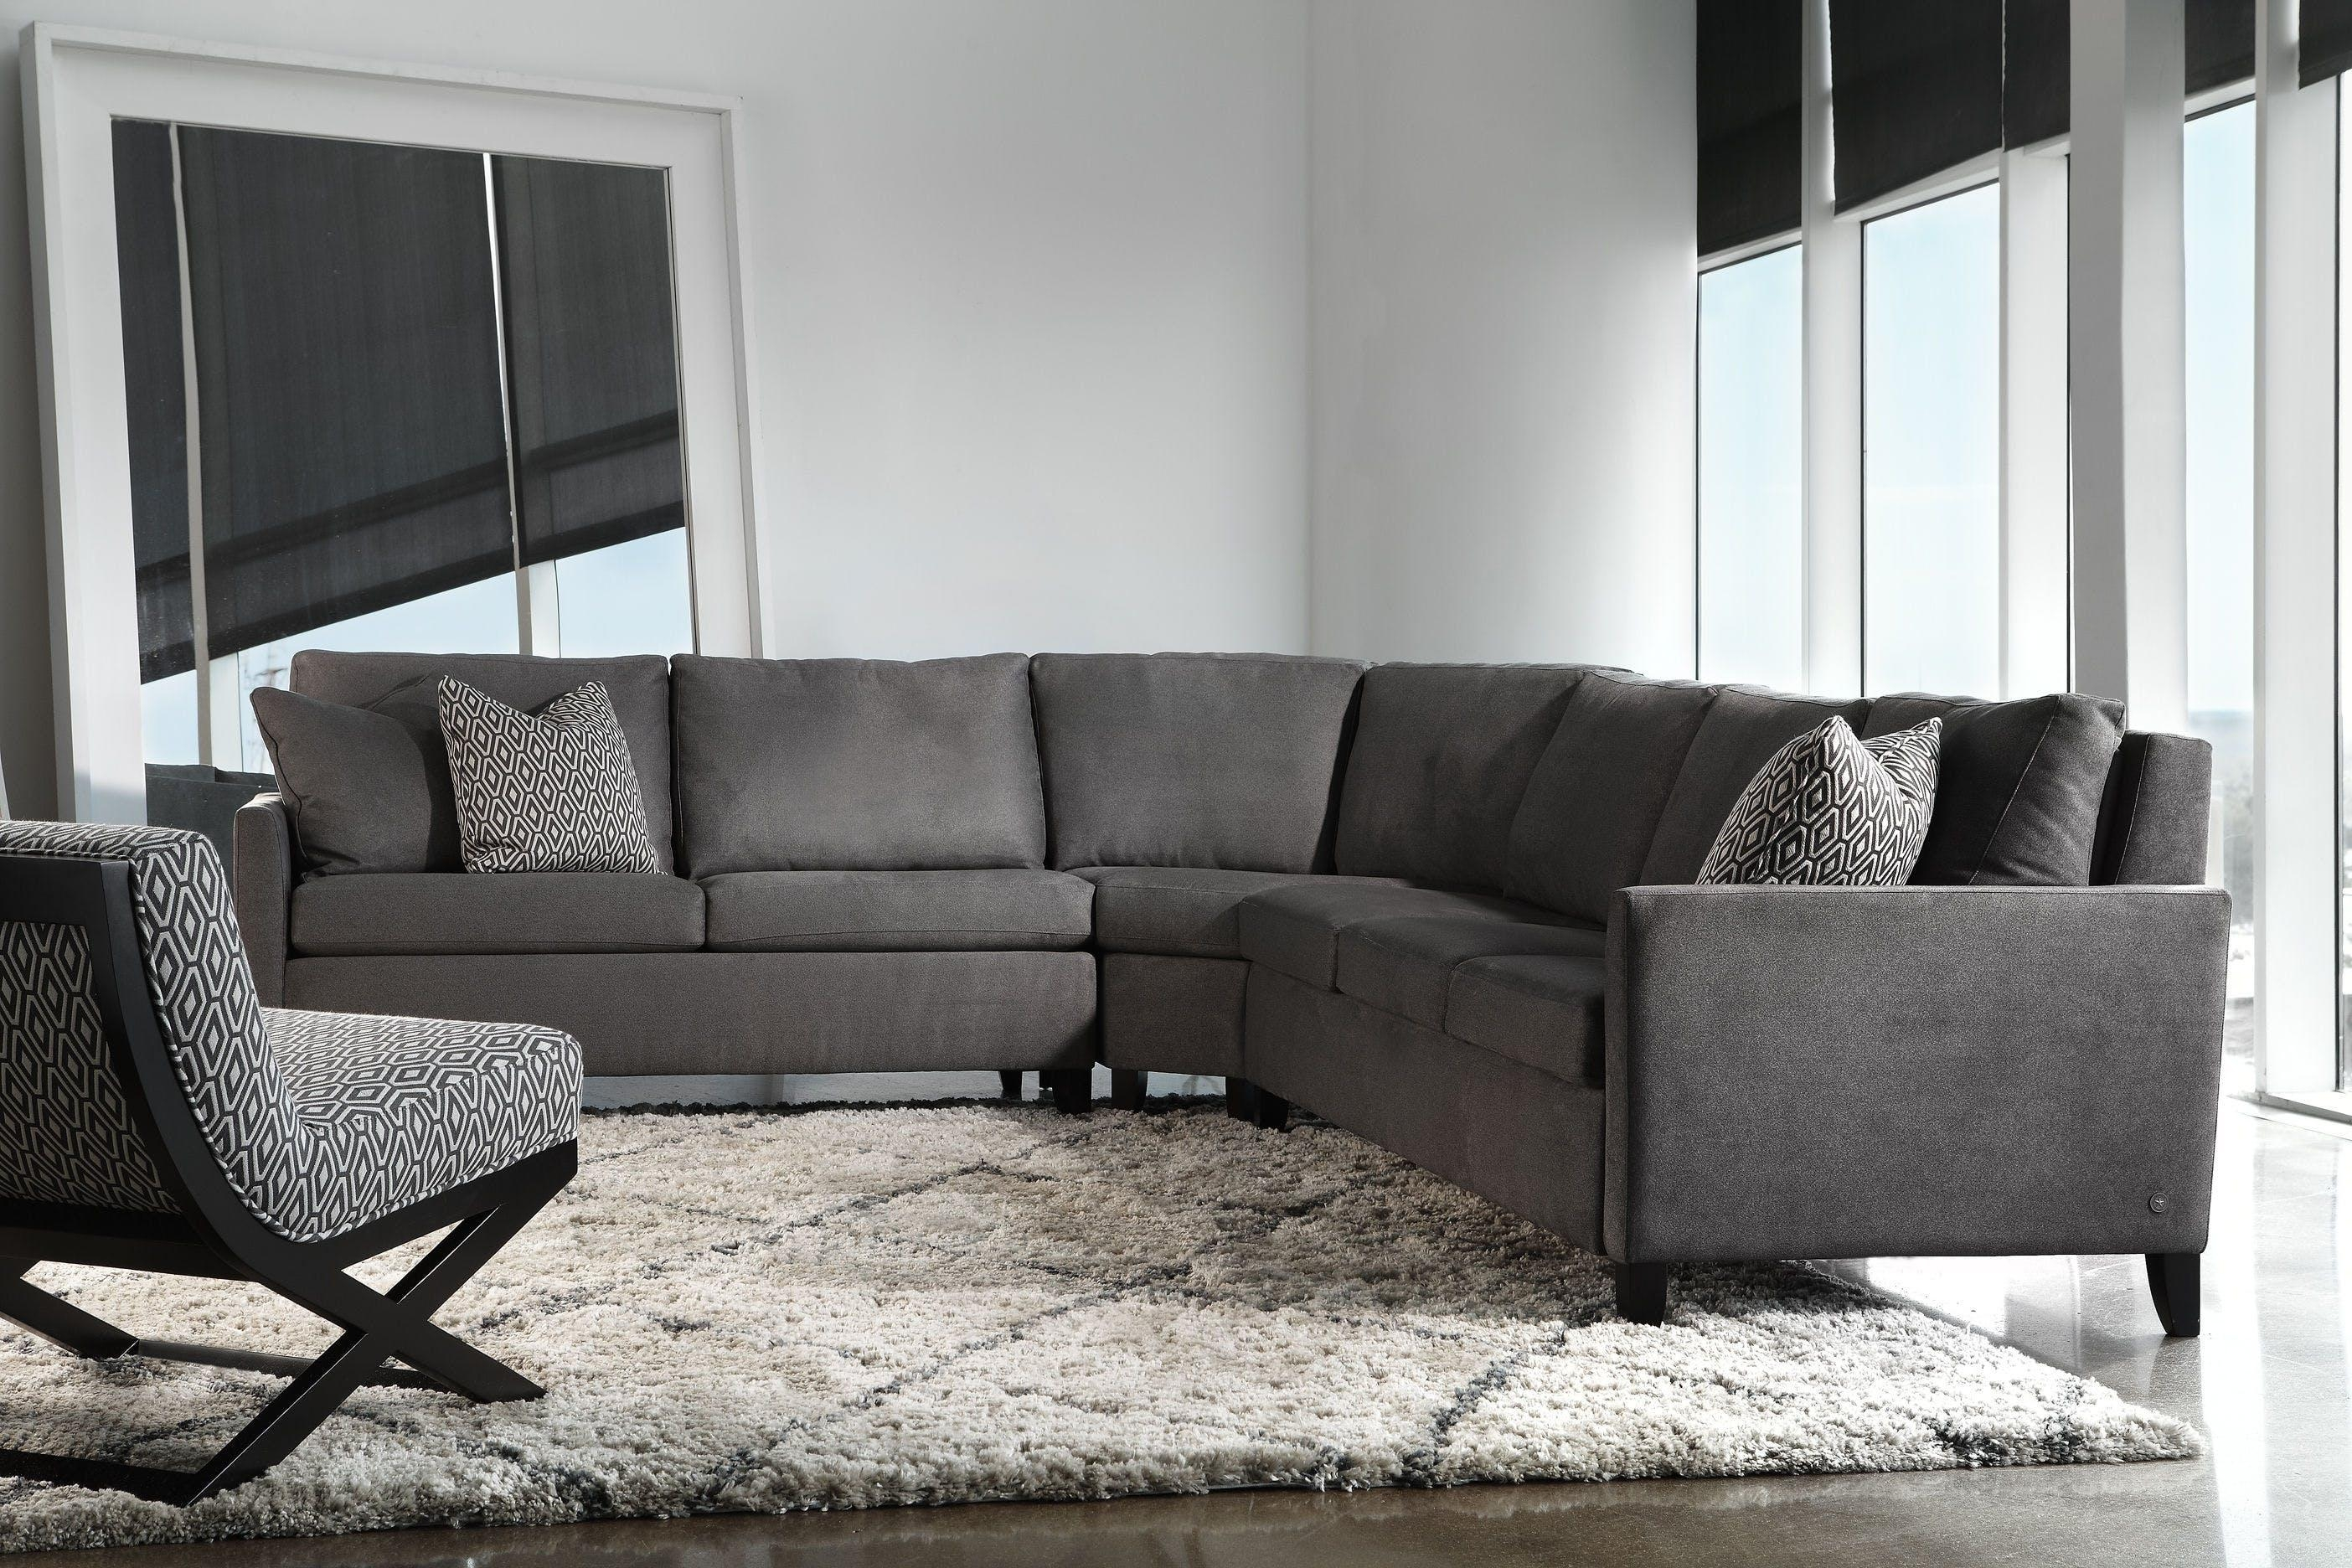 Furniture: Mesmerizing Costco Sectionals Sofa For Cozy Living Room For Berkline Sectional Sofa (Image 8 of 15)